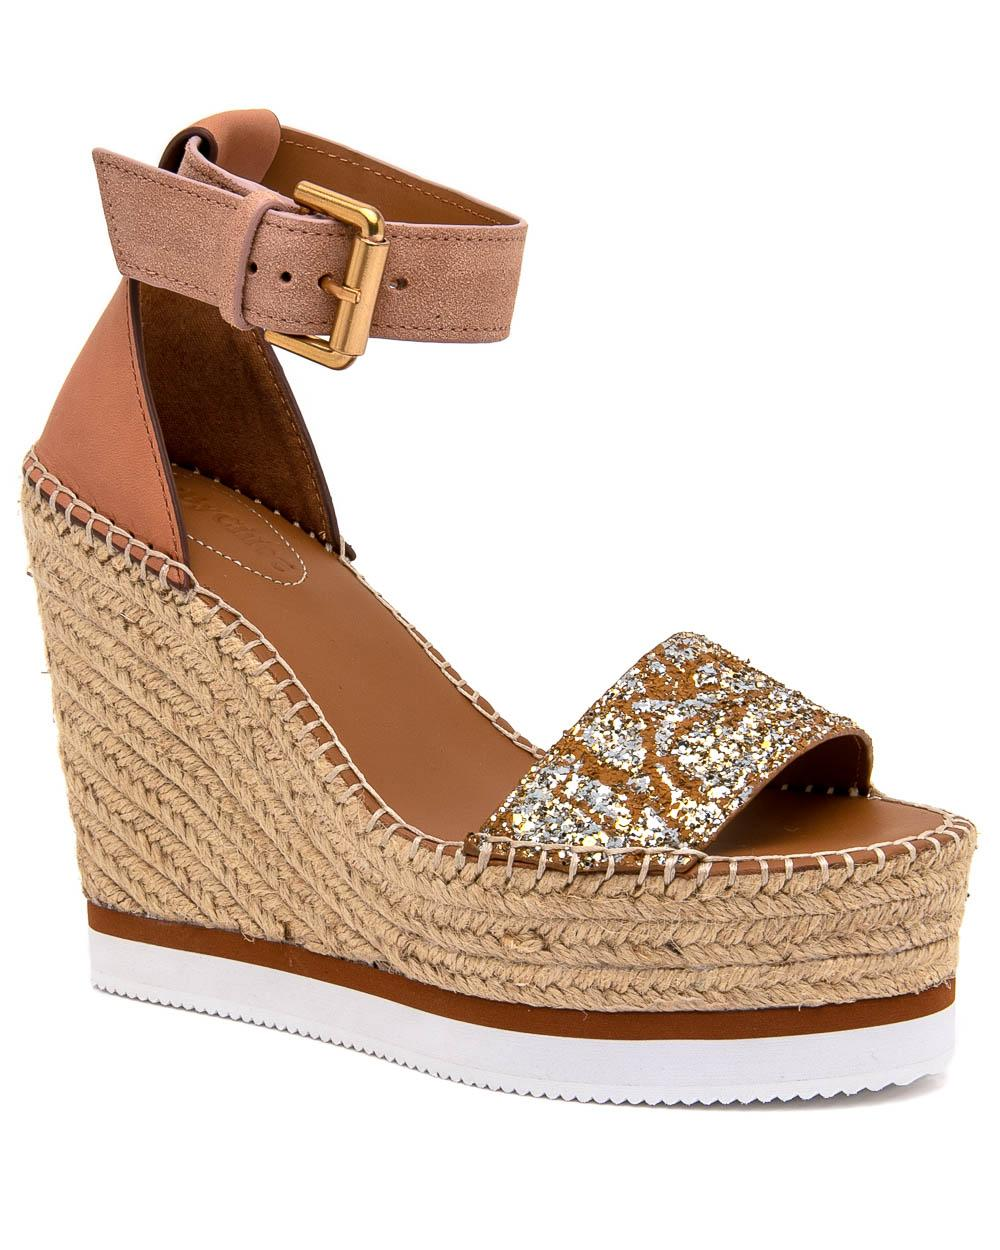 1bc28644318 See By Chloé - Brown Glyn Espadrille Wedge Sandal In Glitter - Lyst. View  fullscreen